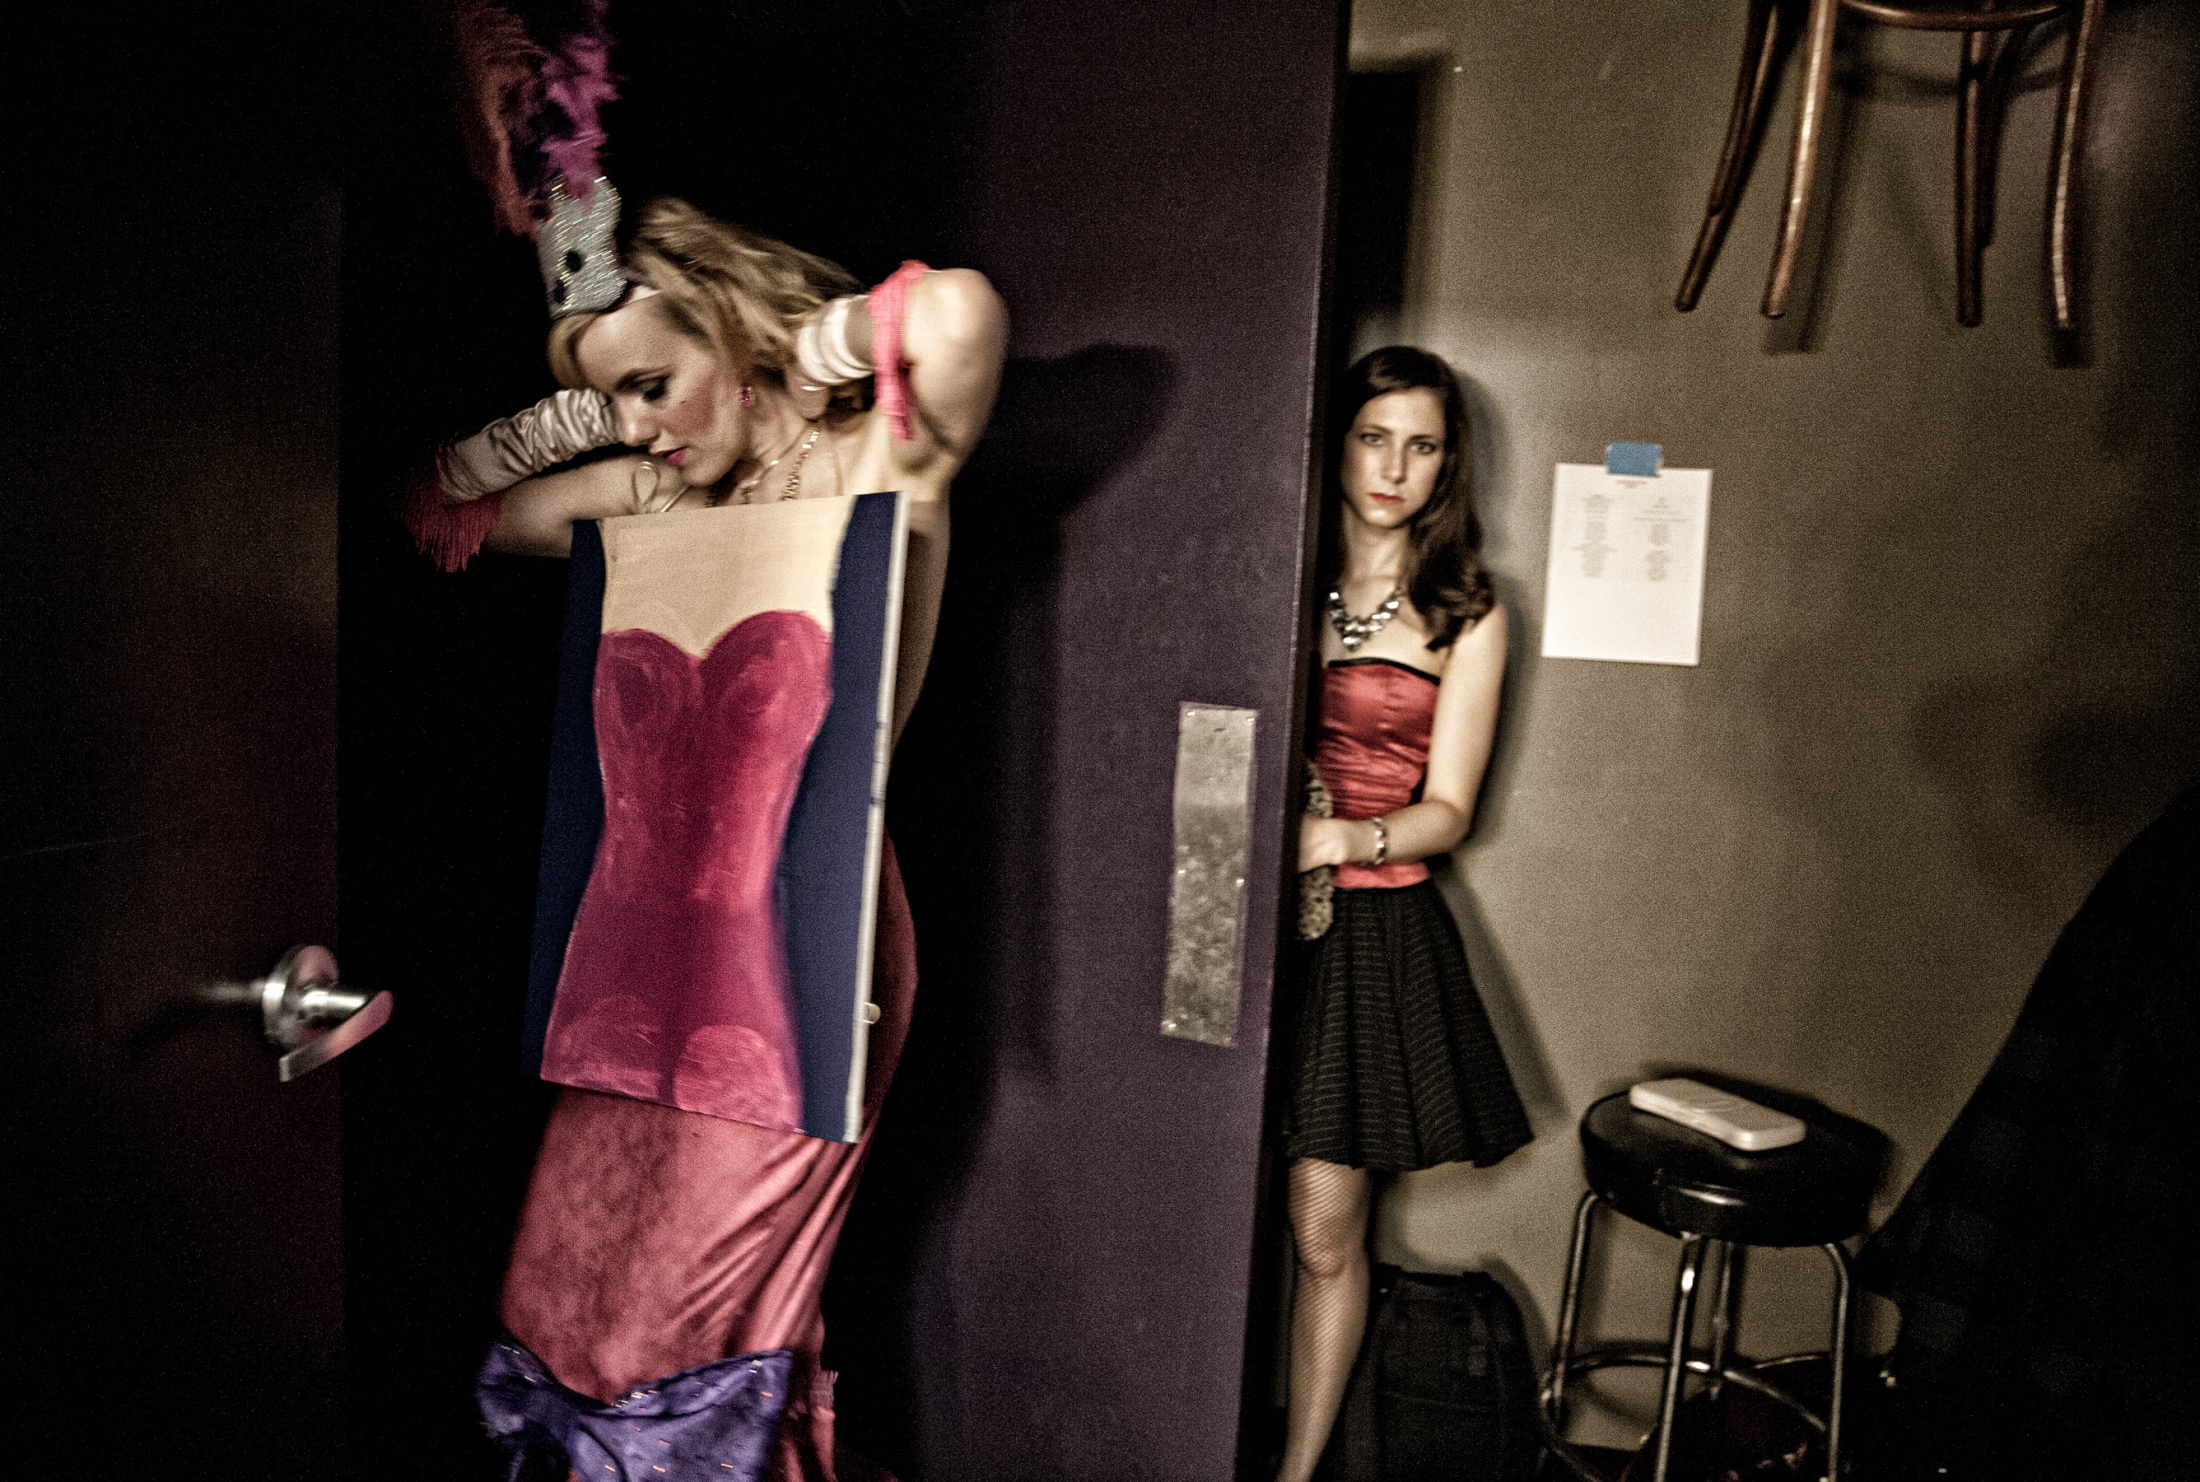 Stagehand Aurora S'more calls Red Hot Annie as she puts final touches on her costume moments before taking the stage. Backstage can appear chaotic, but actually is a well-oiled machine with a fine-tuned order. While standing at the stage entrance, the dancer waits to be introduced by the announcer. The wait gives the dancer an opportunity for a costume check and to mentally prepare to take the stage.